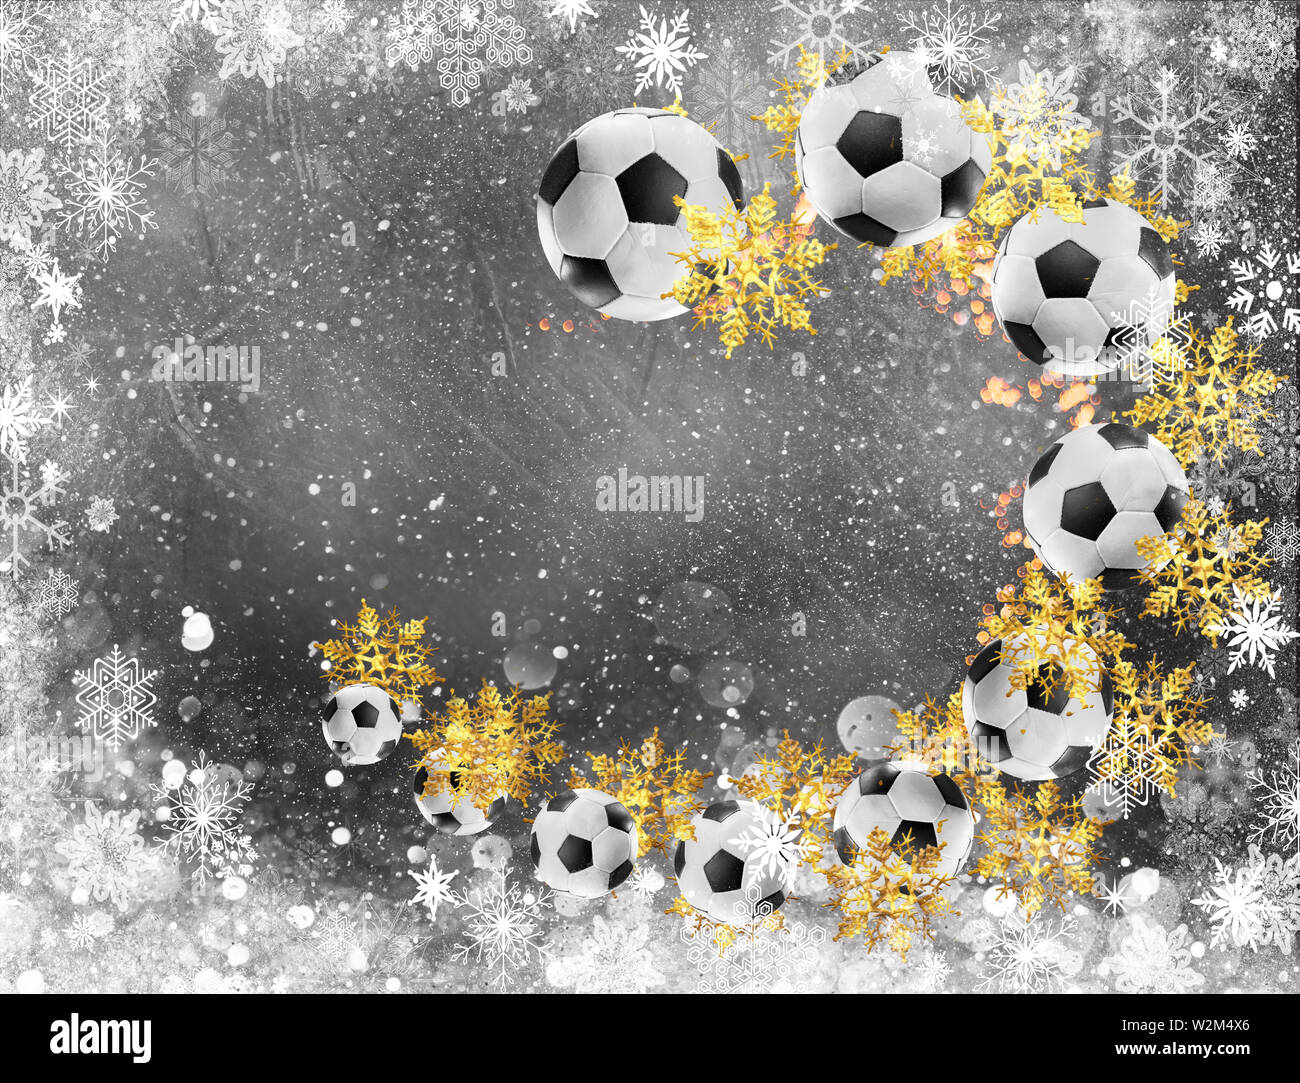 Christmas Sports Background.Soccer Christmas Background Soccer Balls Flying In Circles